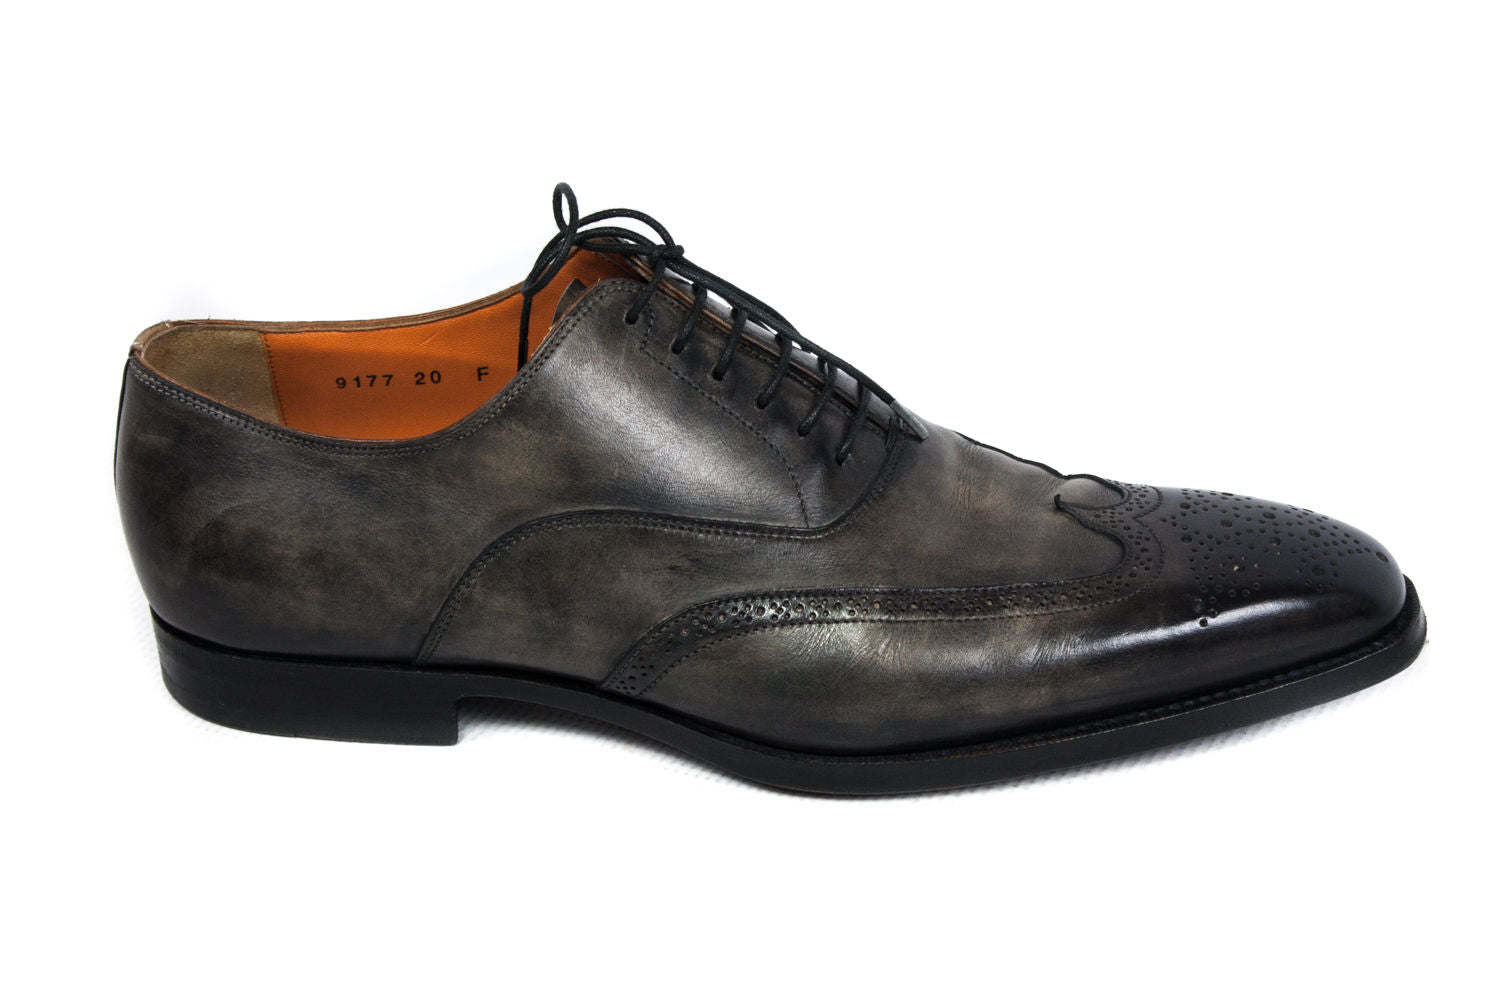 SANTONI Aged Leather Brogue Wingtip Oxford Shoes USA 9.5 - secondfirst